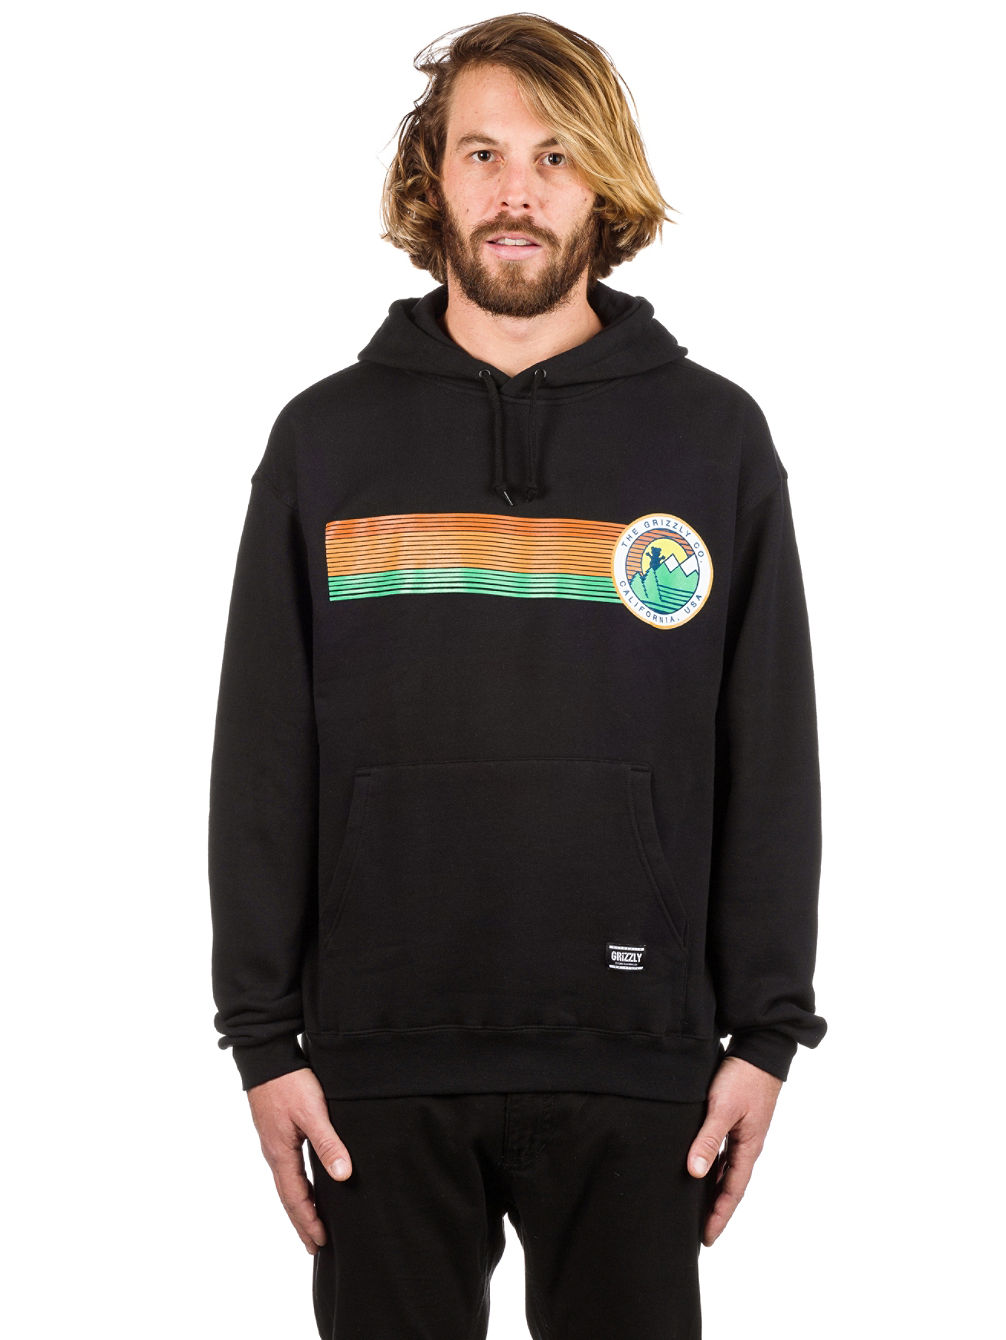 Beyond The Bush Hoodie